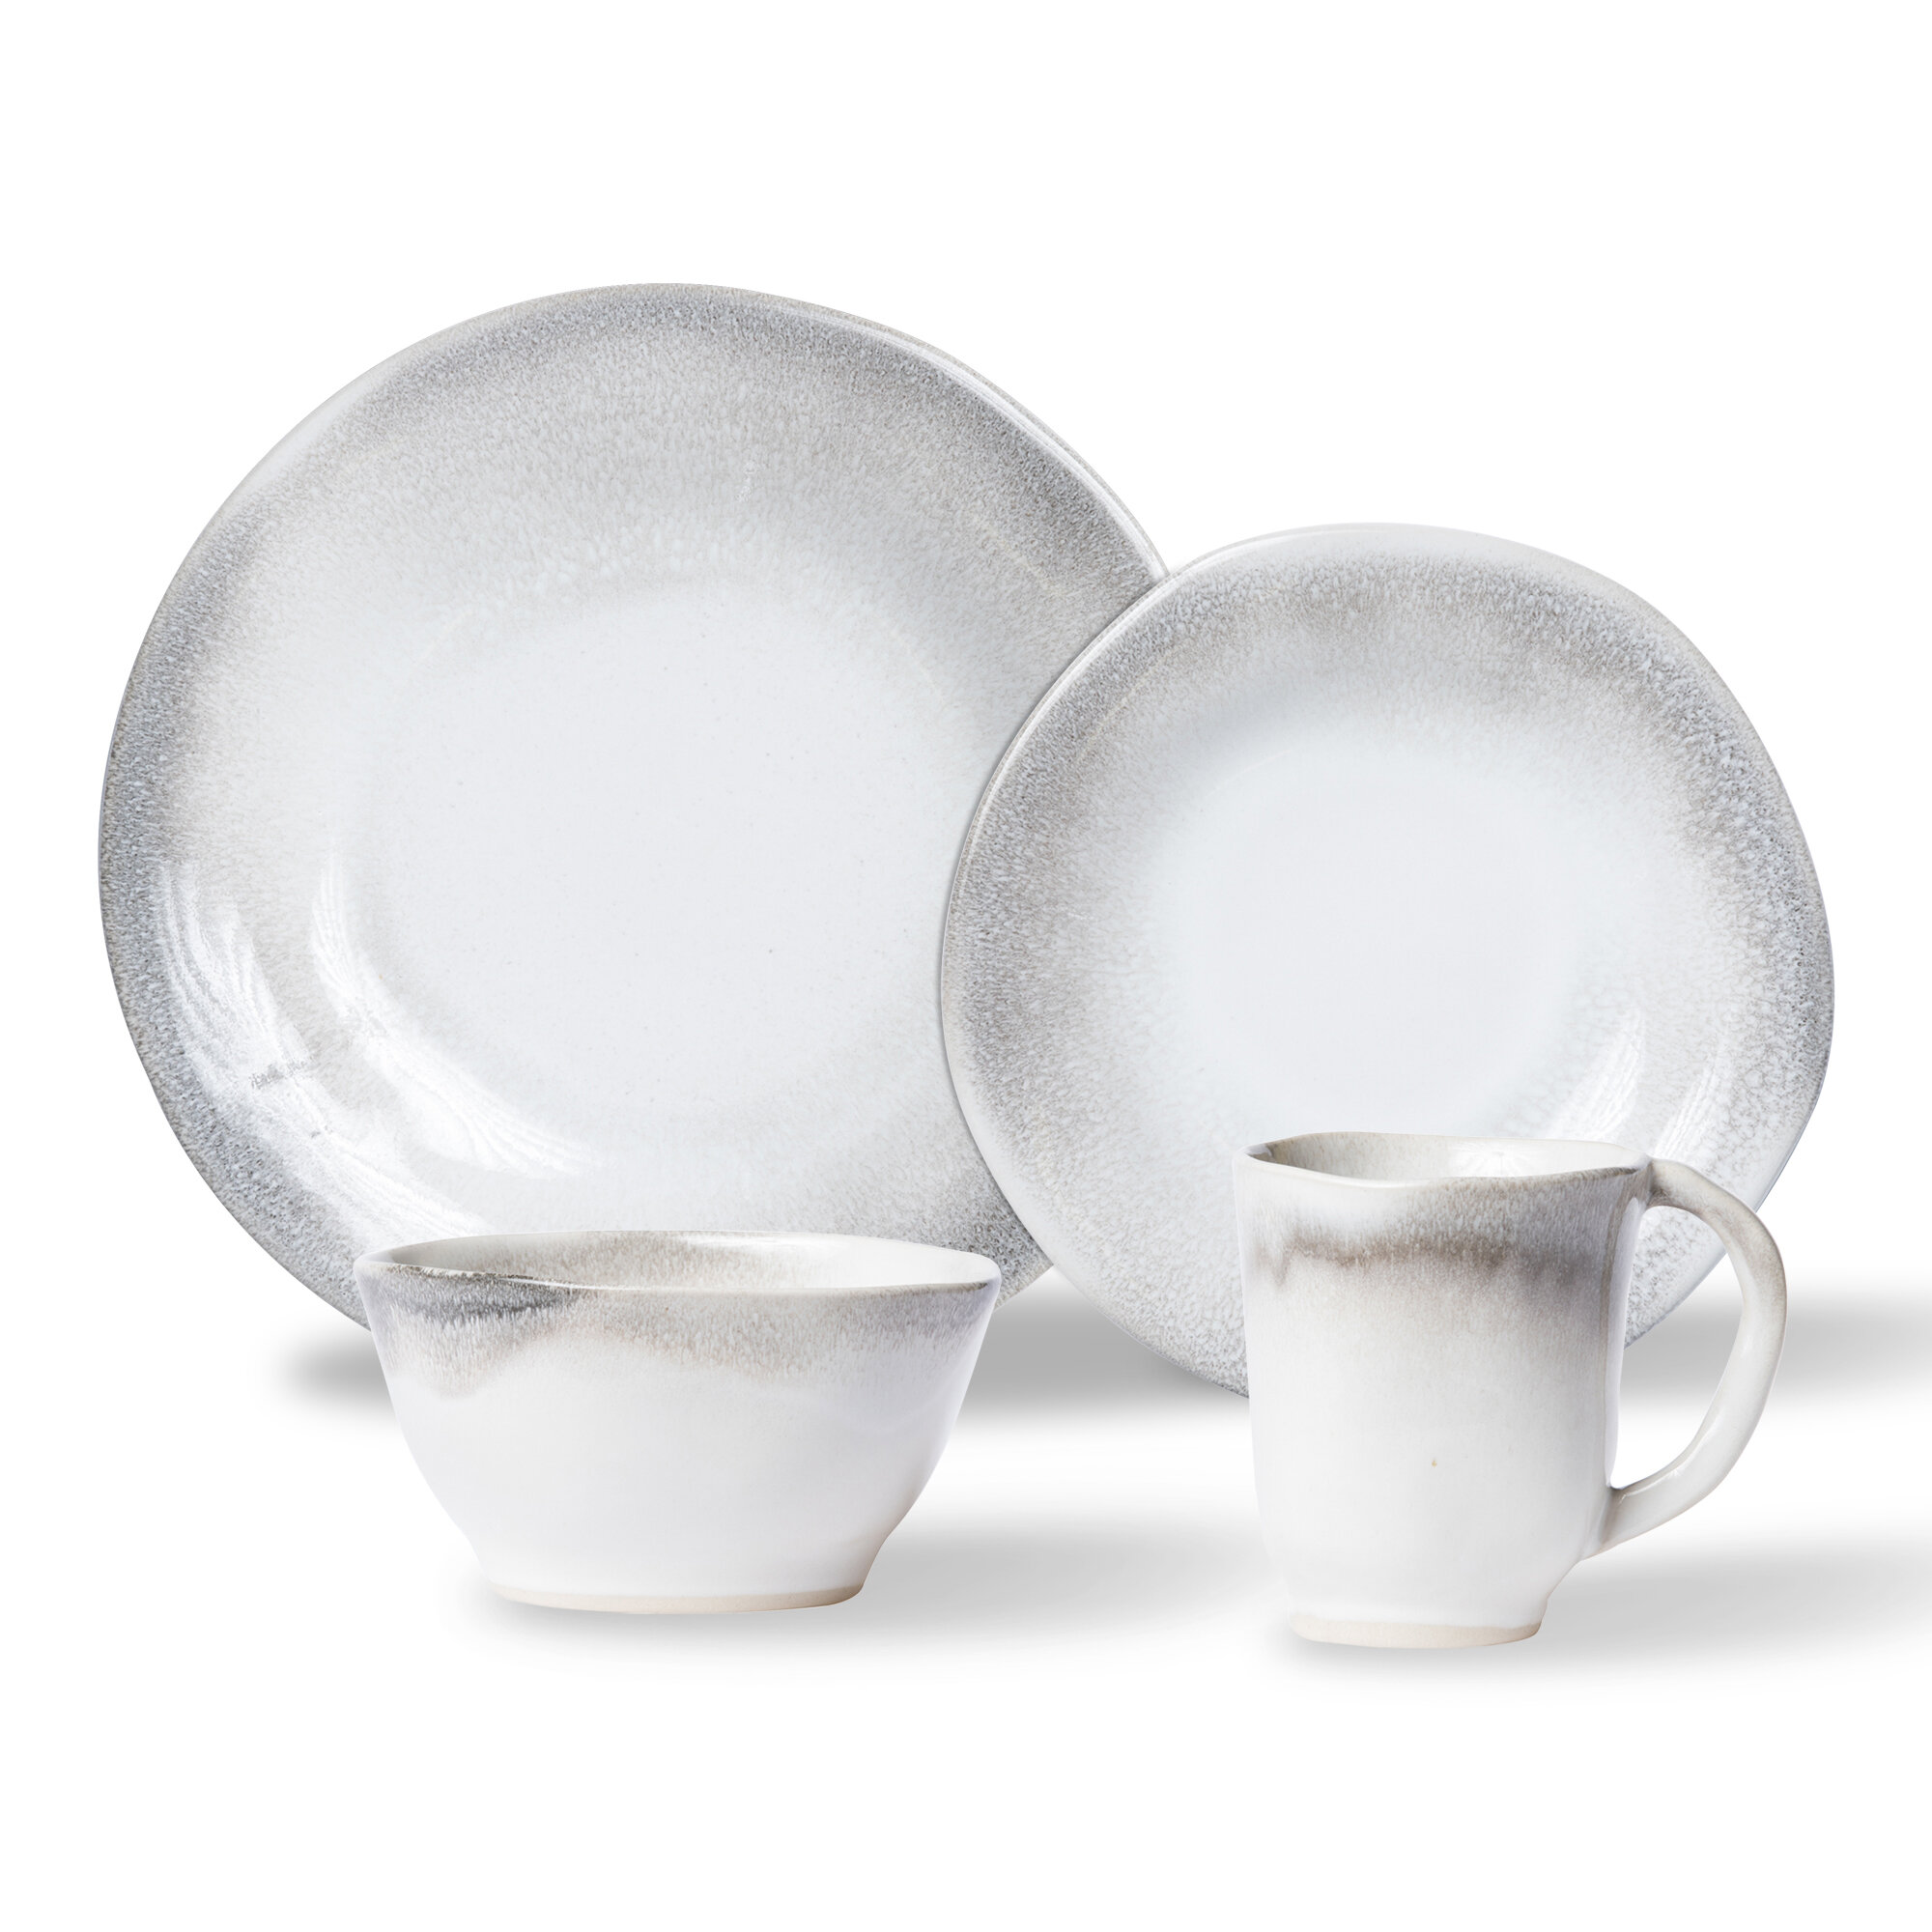 Vietri Viva Santorini 4 Piece Place Setting Set Service For 1 Wayfair